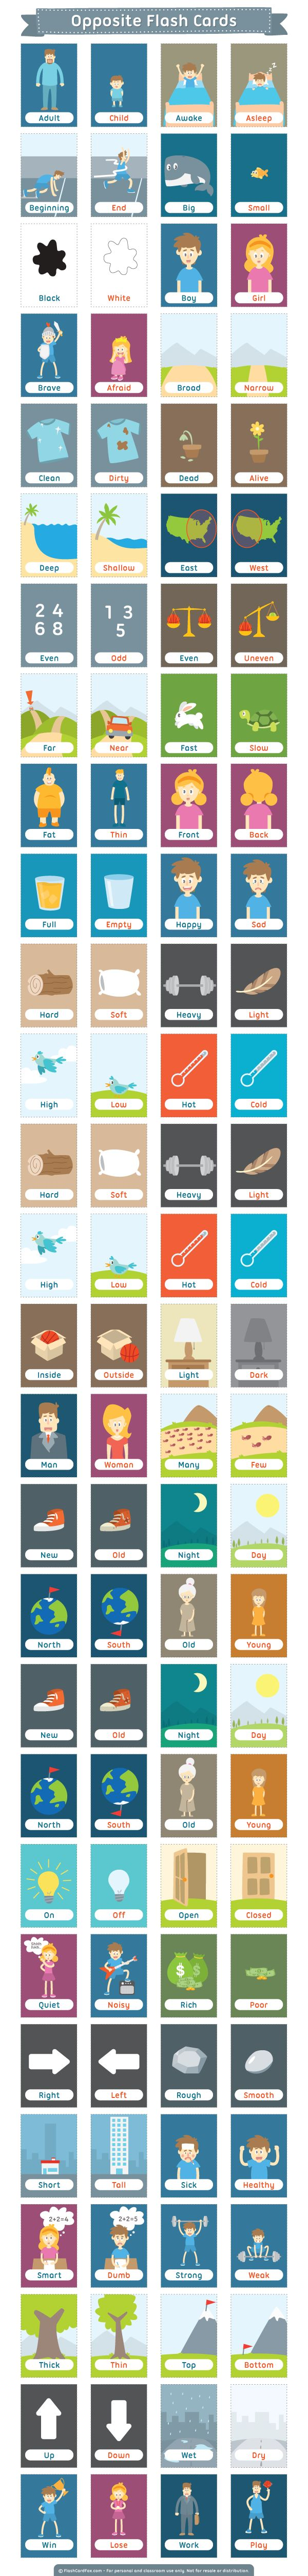 Free printable opposite flash cards. Download them in PDF format at http://flashcardfox.com/download/opposite-flash-cards/